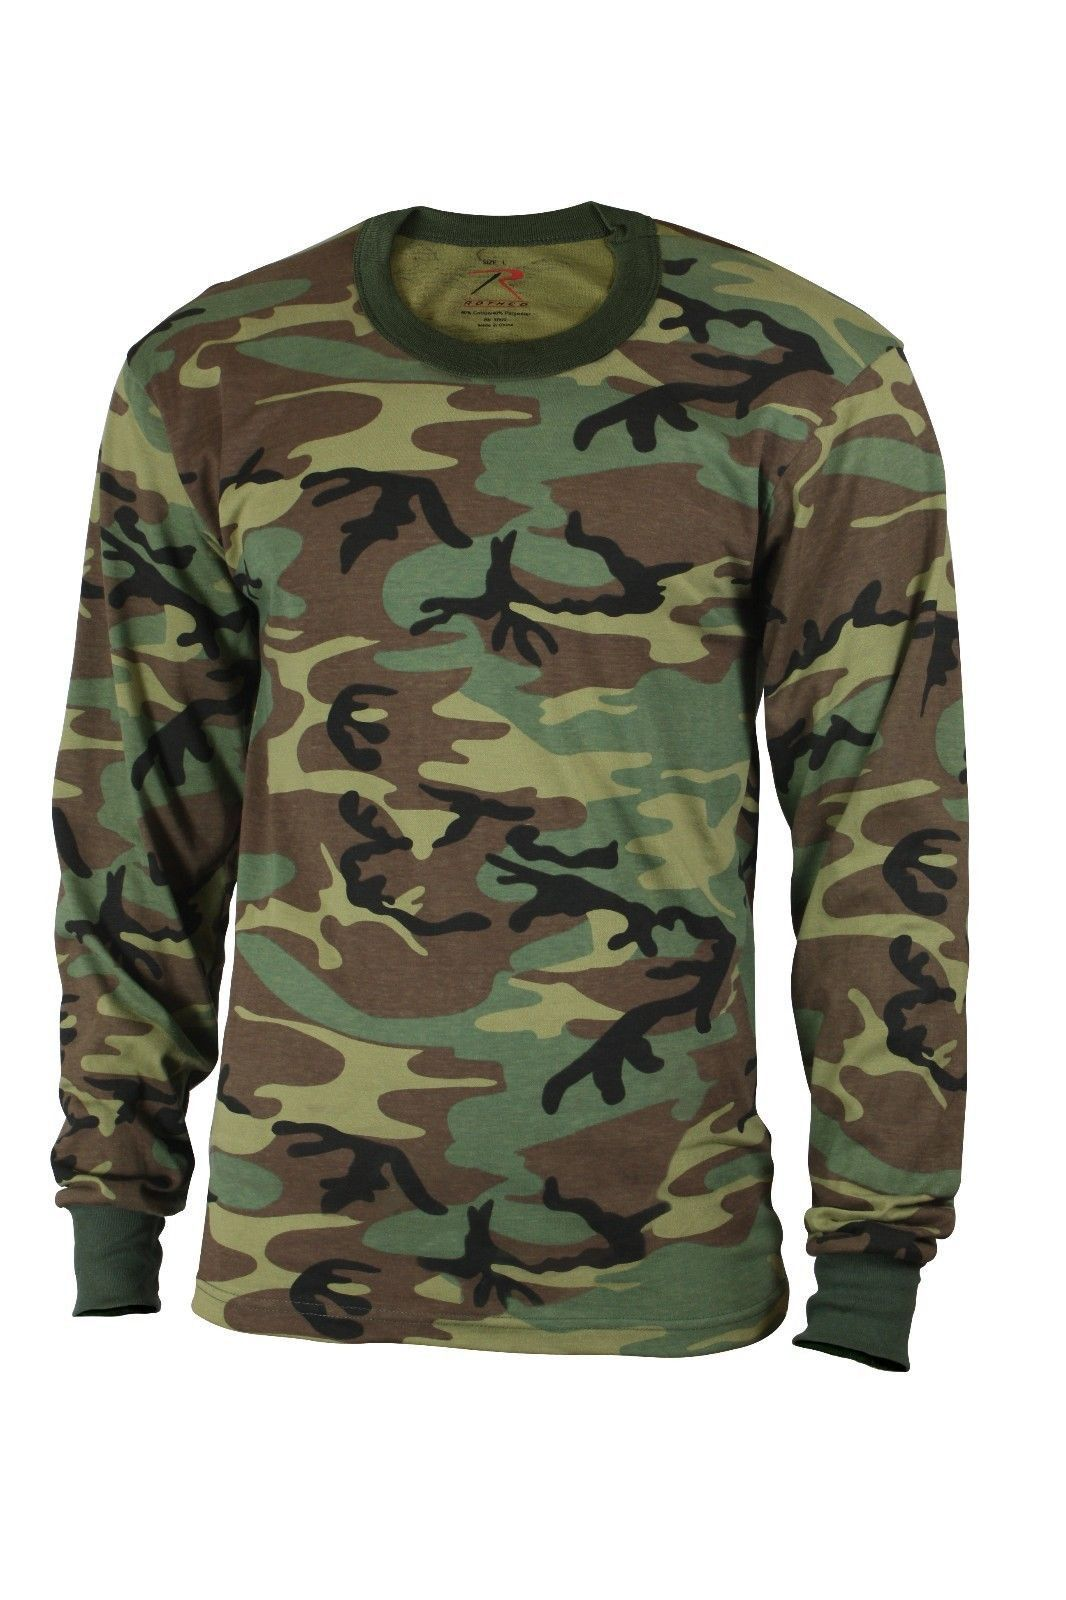 c44e23726c2 KIDS LONG SLEEVE CAMOUFLAGE T-SHIRTS Comfortable Poly Cotton Blend Material  Available in Woodland Camo or ACU Digital Camo Great Trendy Look for Boys  and ...